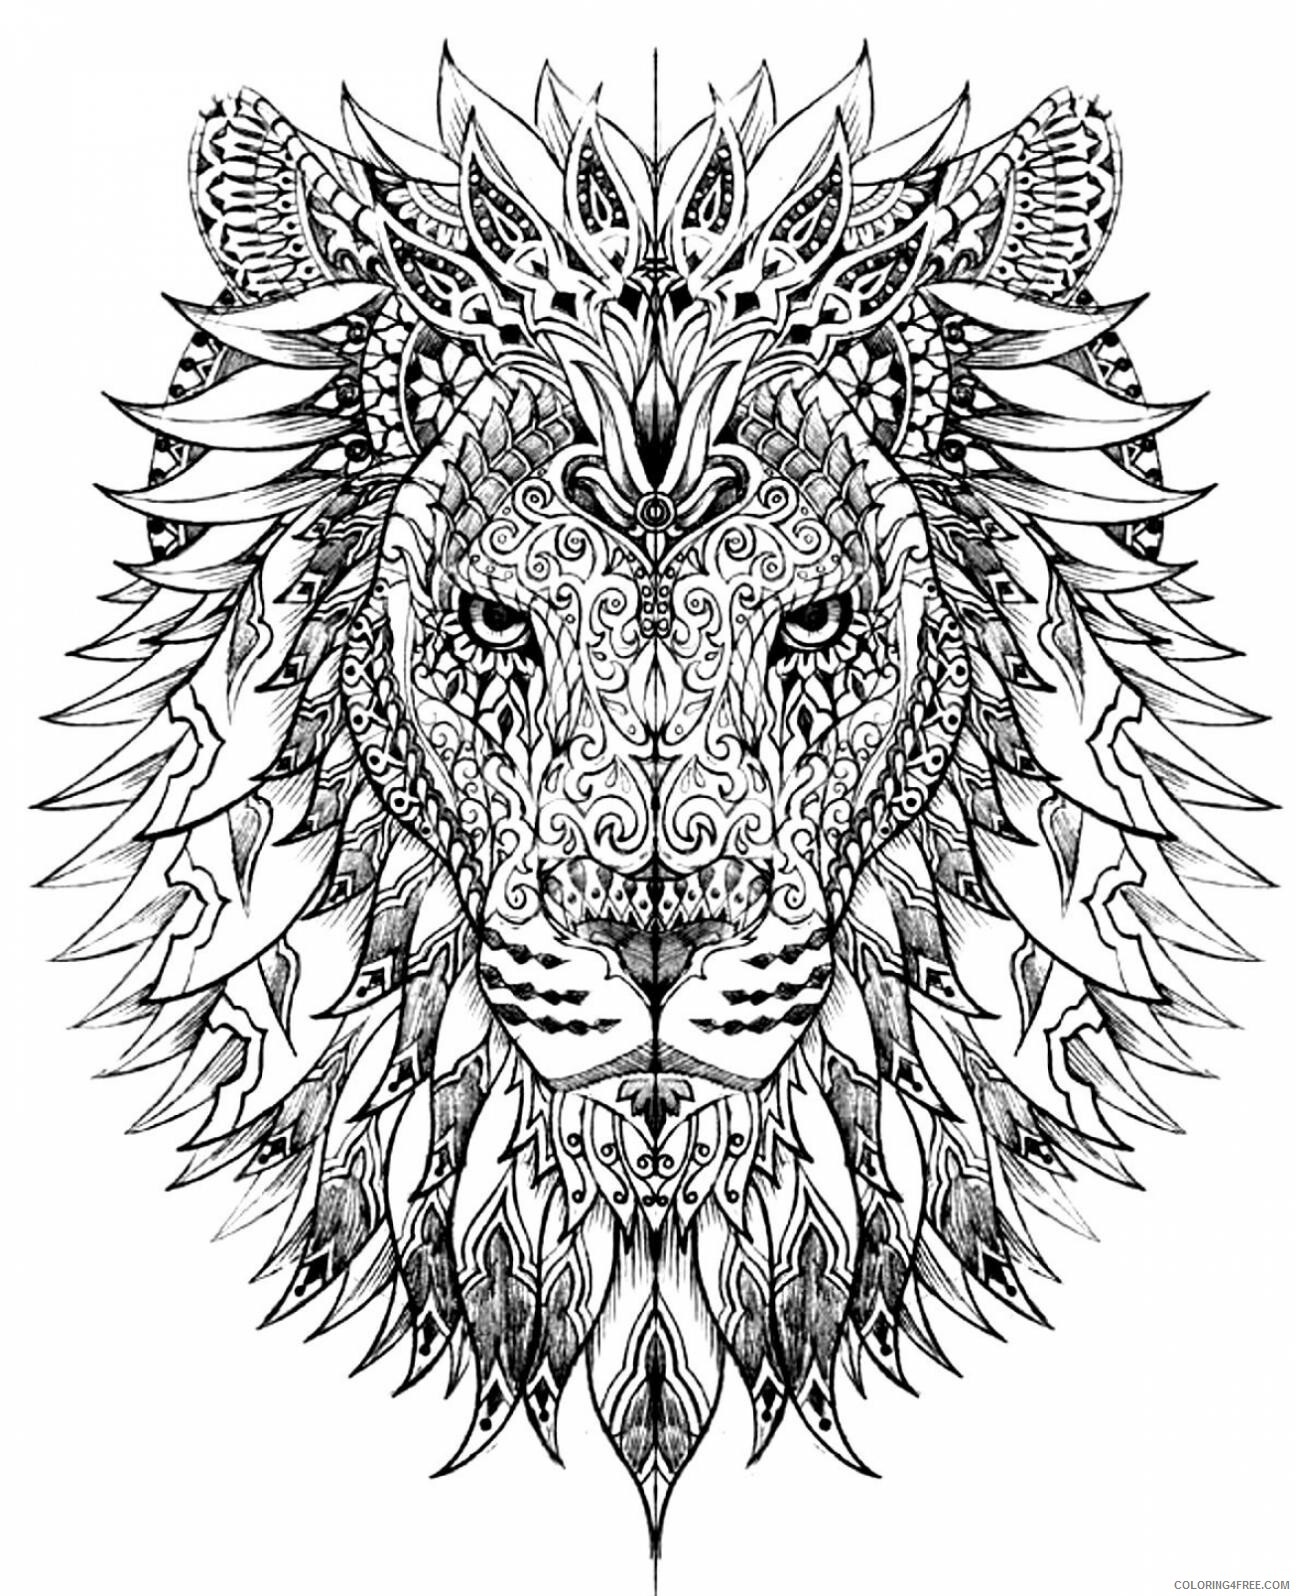 Lion Coloring Pages Adult Lion for Adults Printable 2020 495 Coloring4free